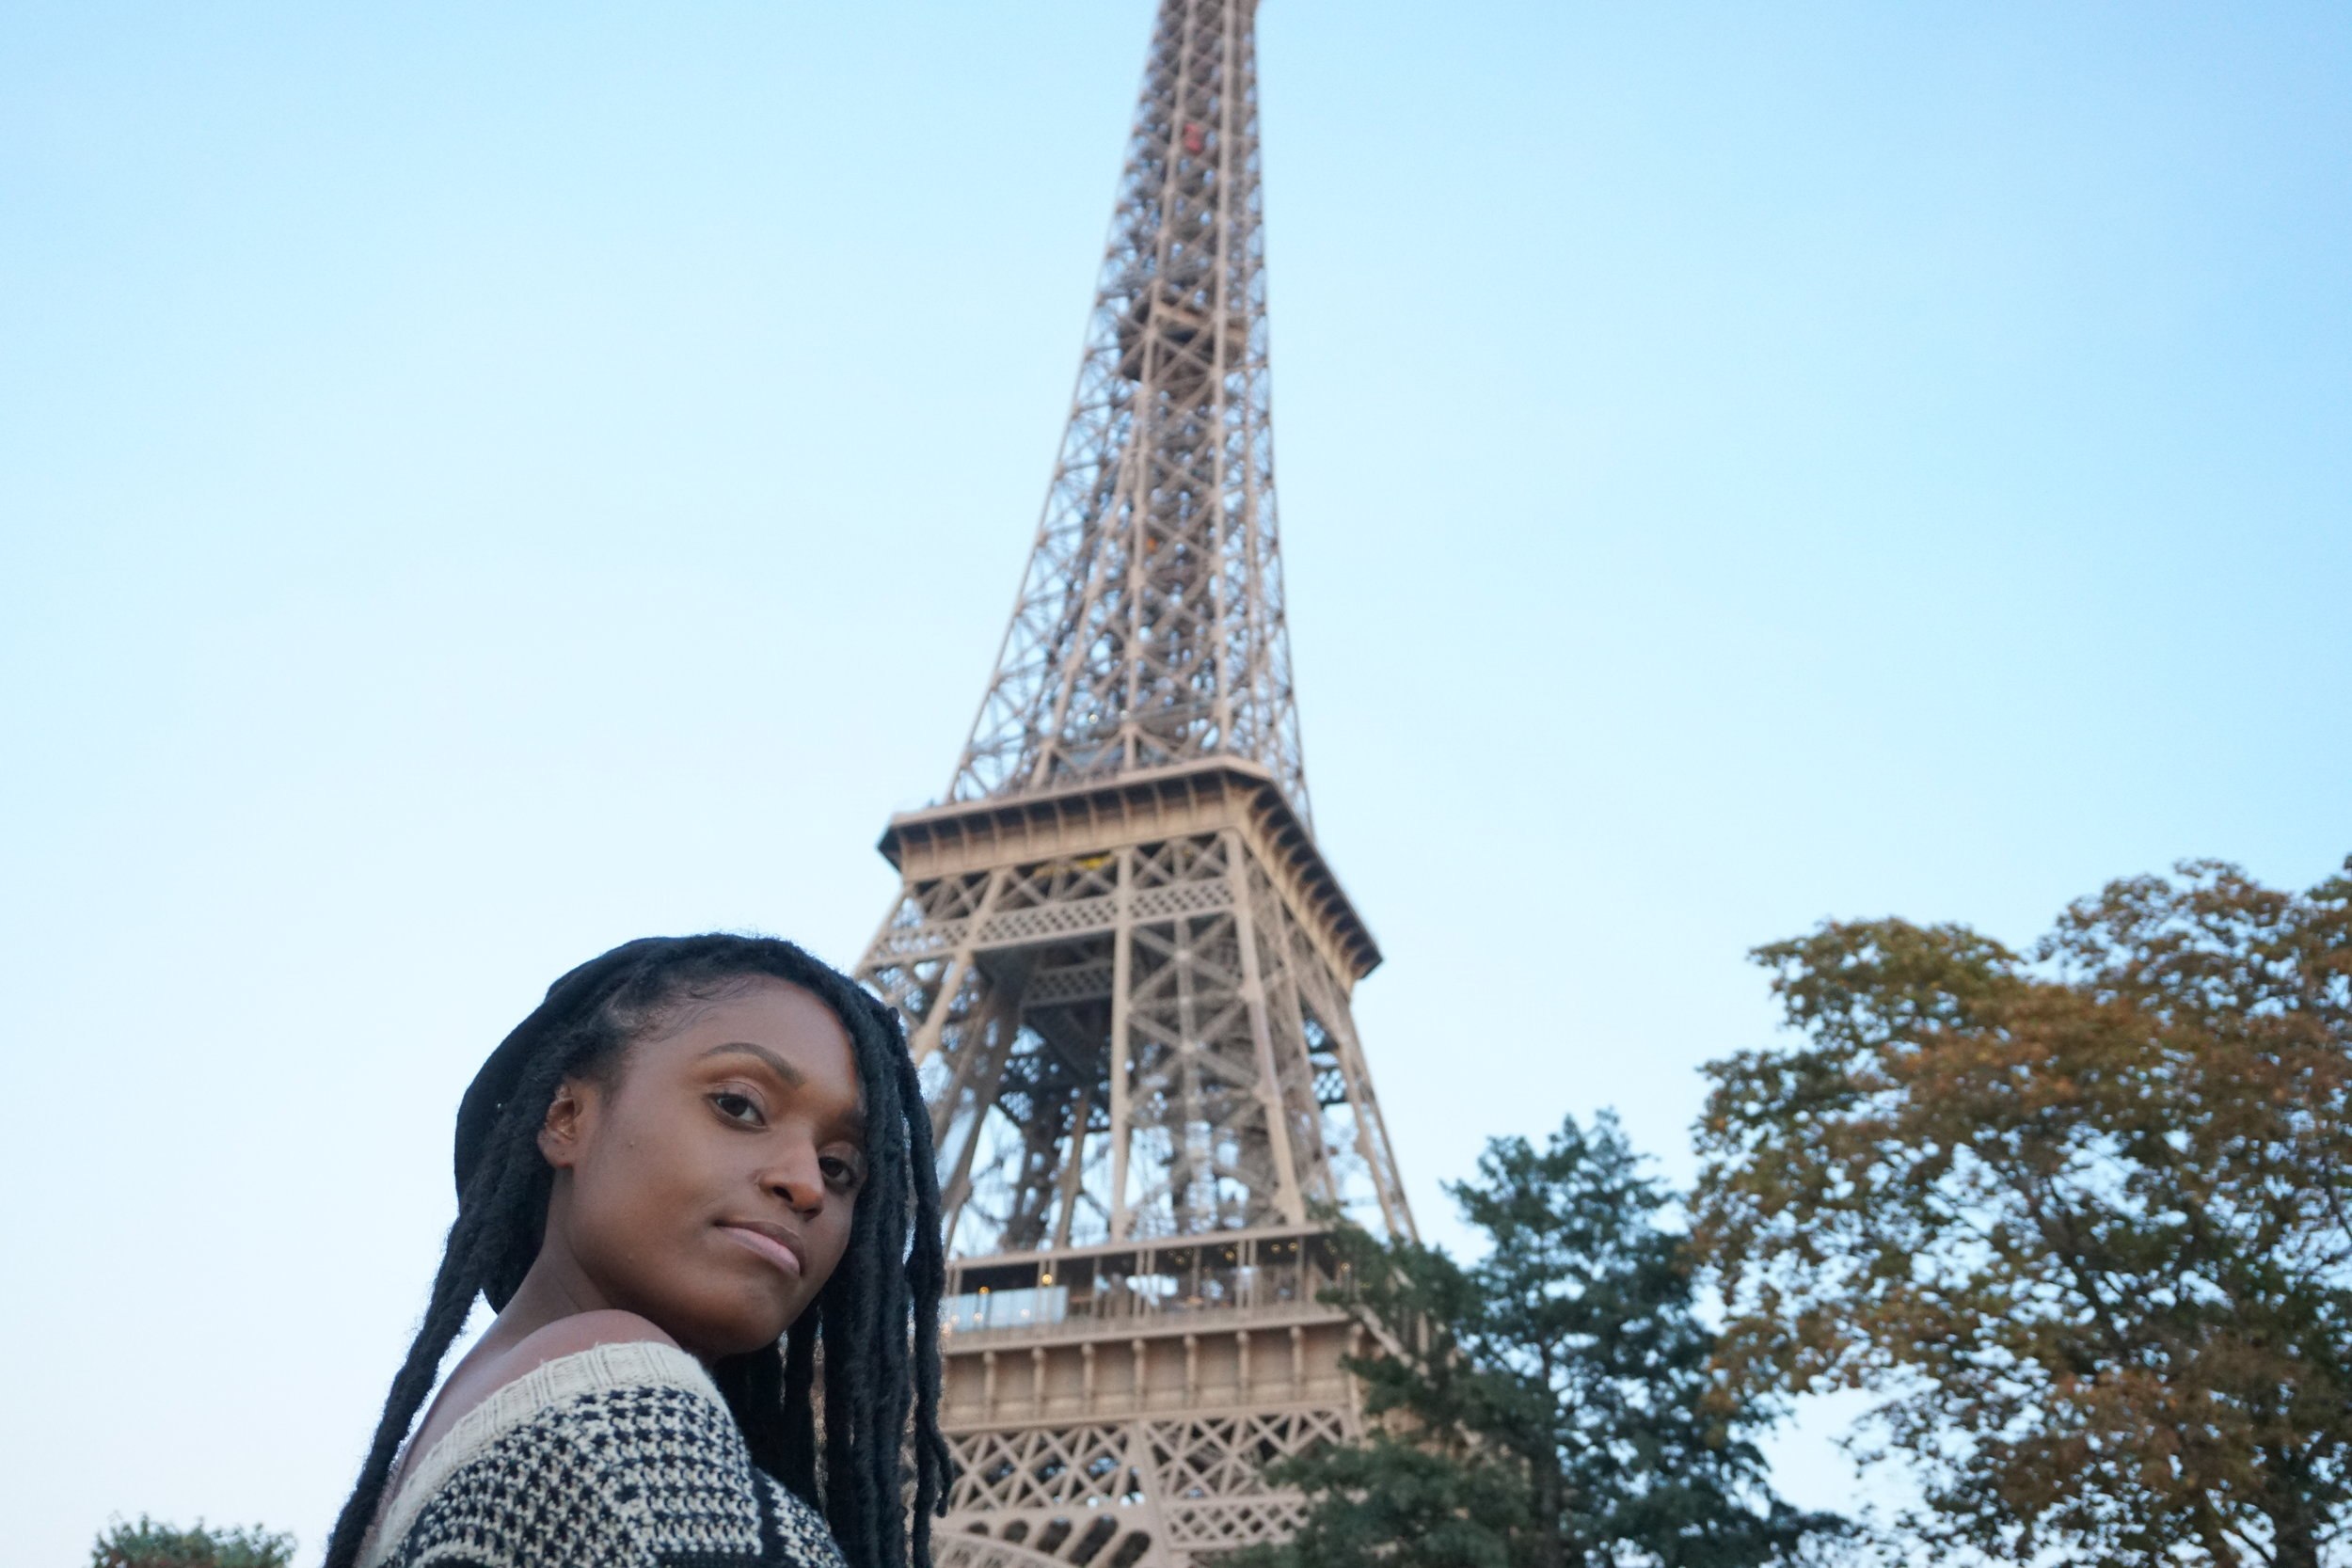 eiffel tower - Most visited paid monument in the world.